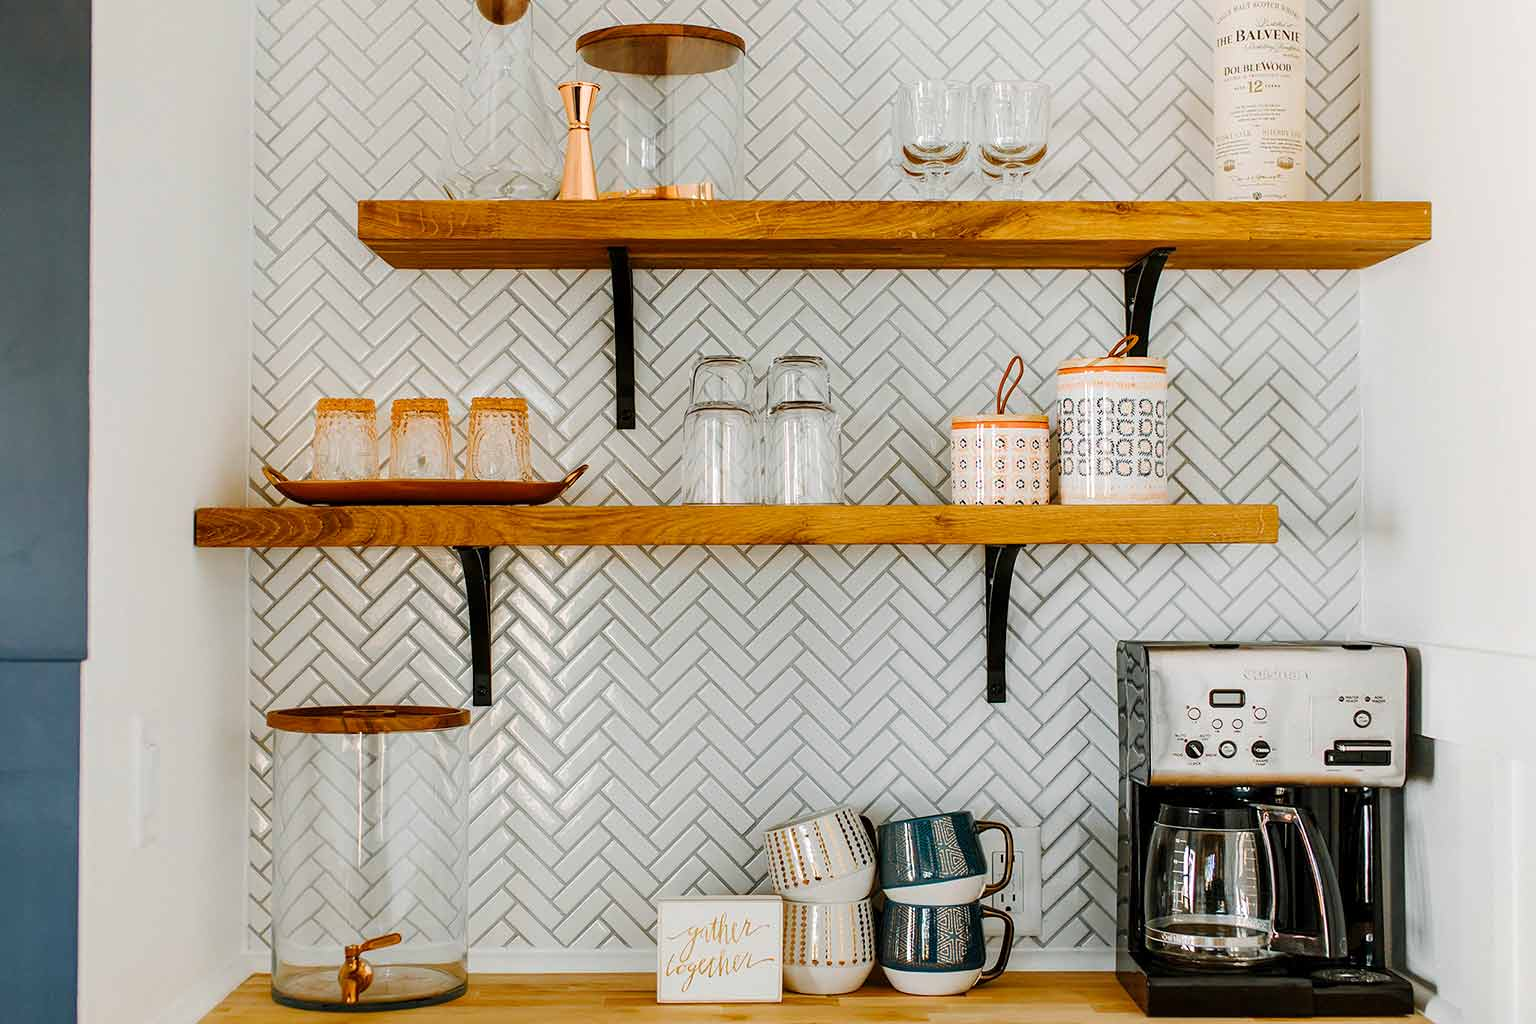 Kitchenette with open shelving and herringbone tile - The Guest House Reveal - That Homebird Life Blog